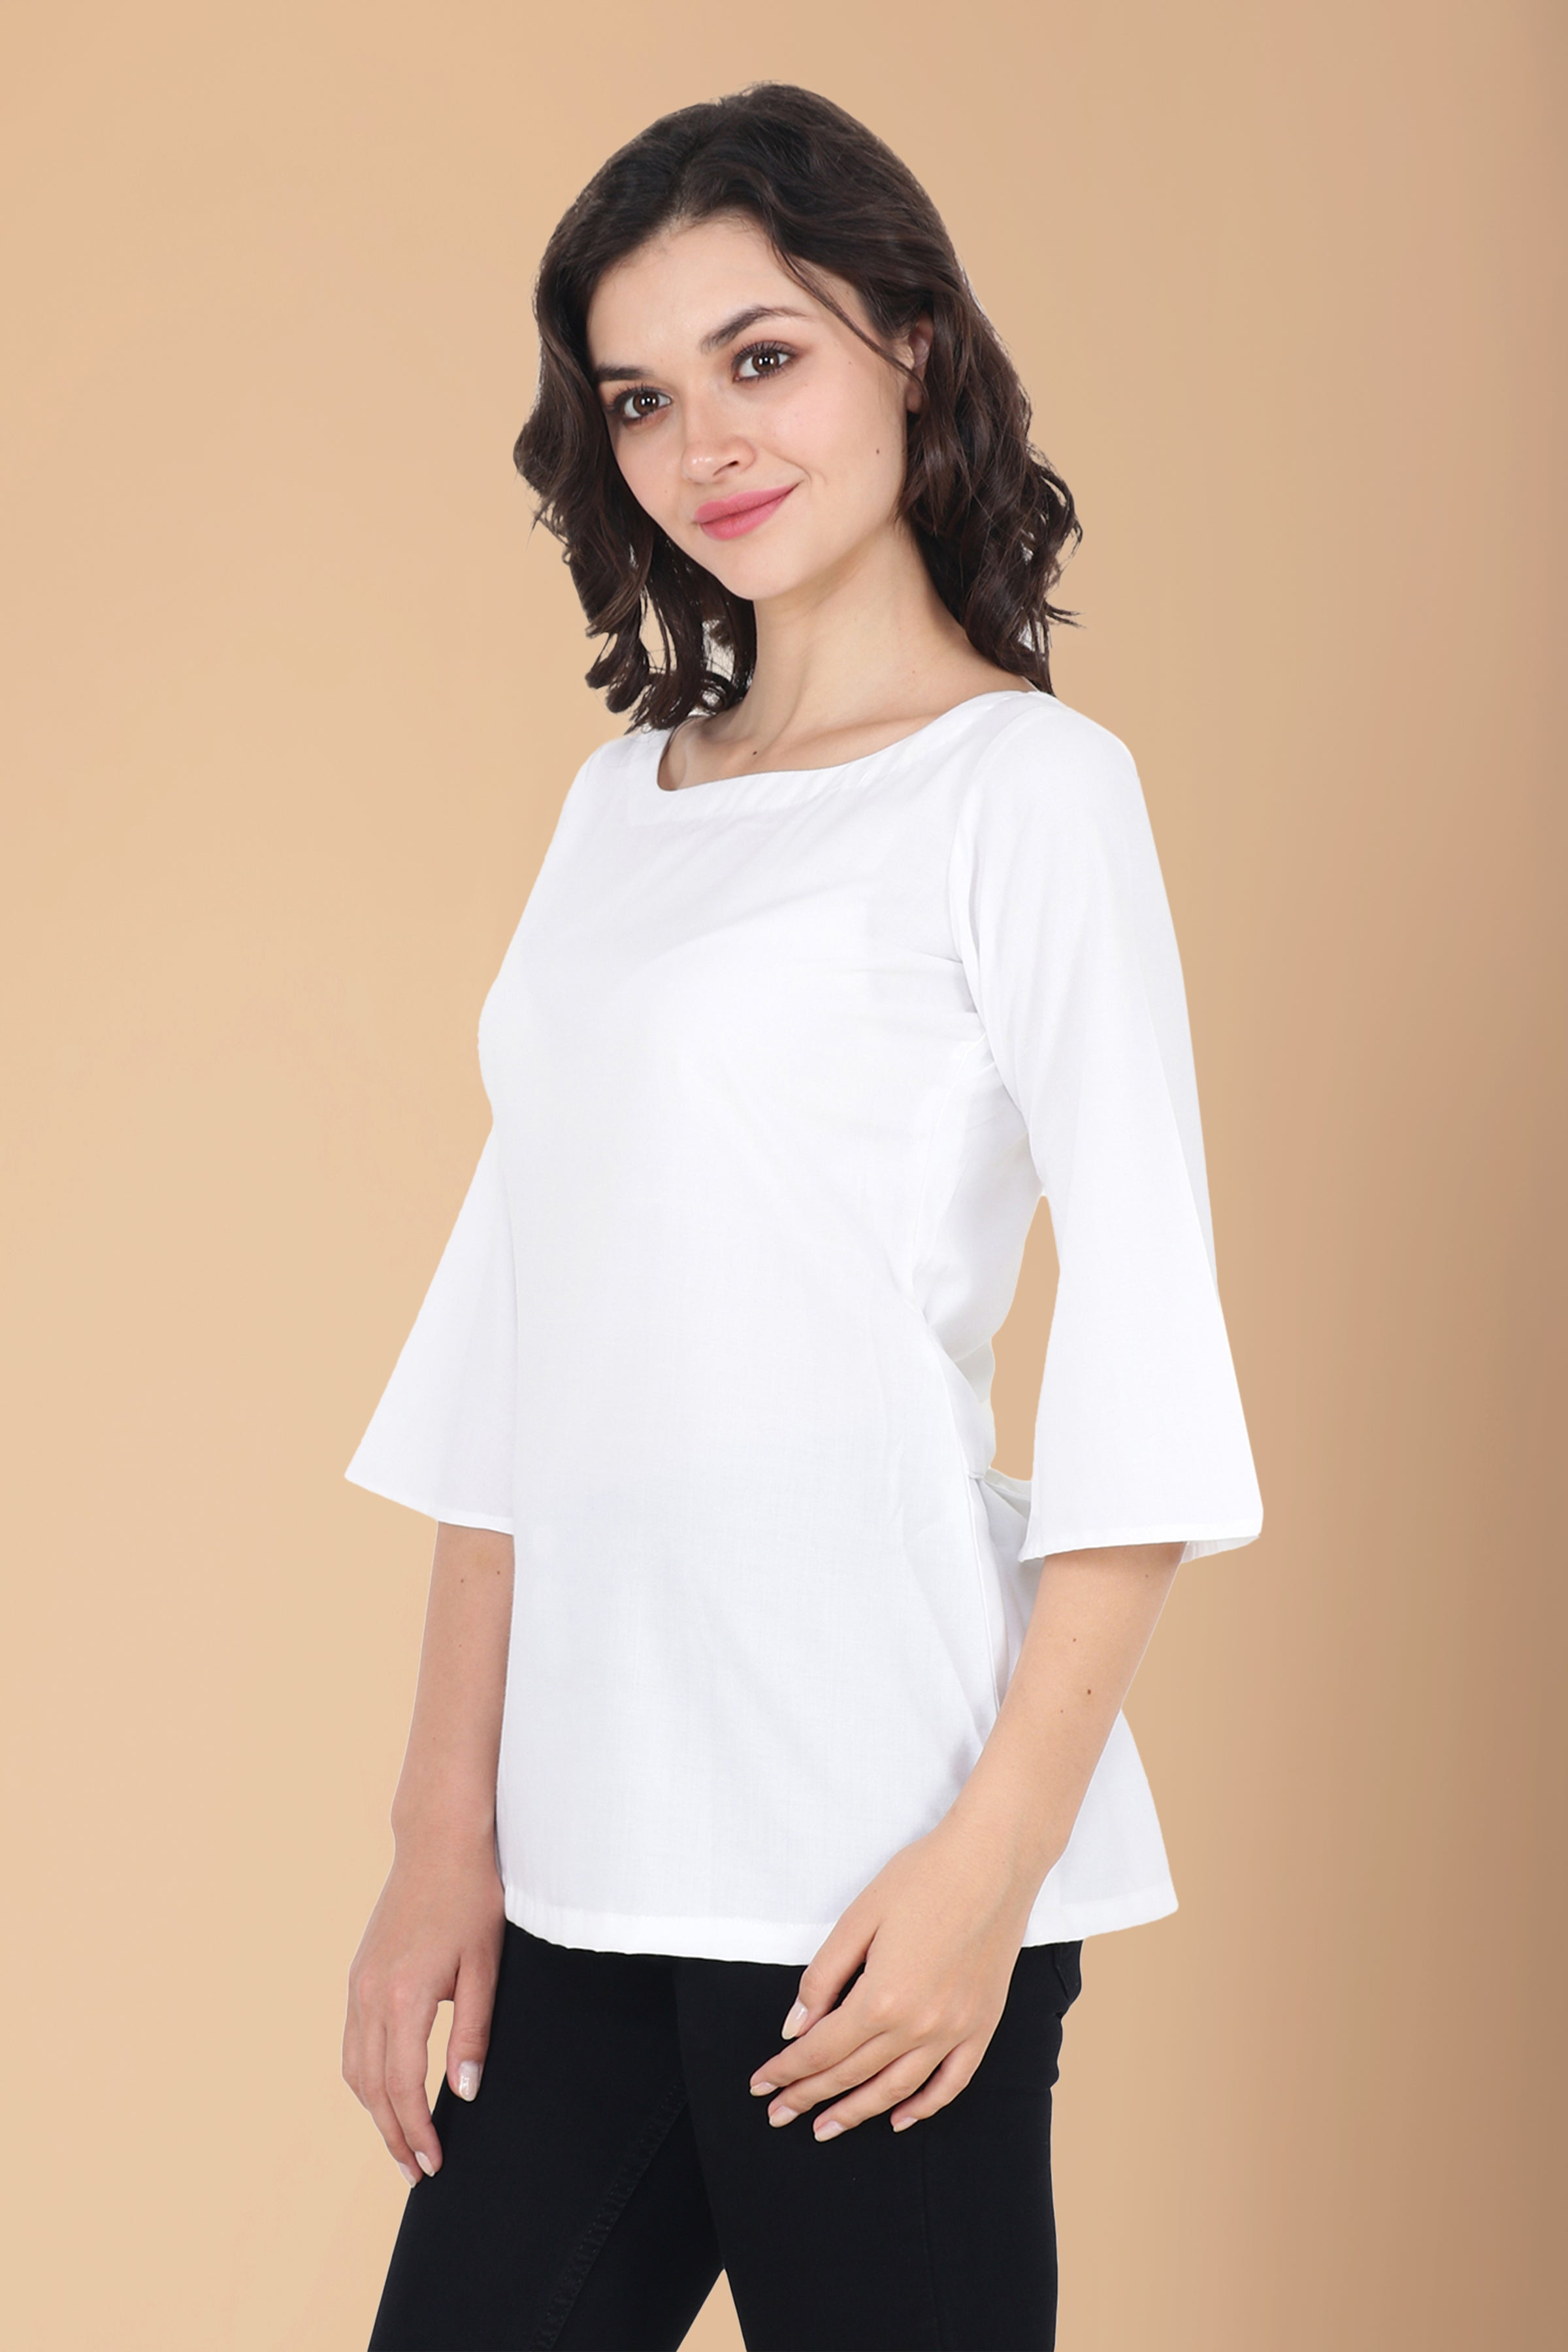 10XL, 2XL, 3XL, 4XL, 5XL, 6XL, 7XL, 8XL, 9XL, BACK BELTED, COTTON, LOOSE, PLUS SIZE TOP, SOLID, WHITE